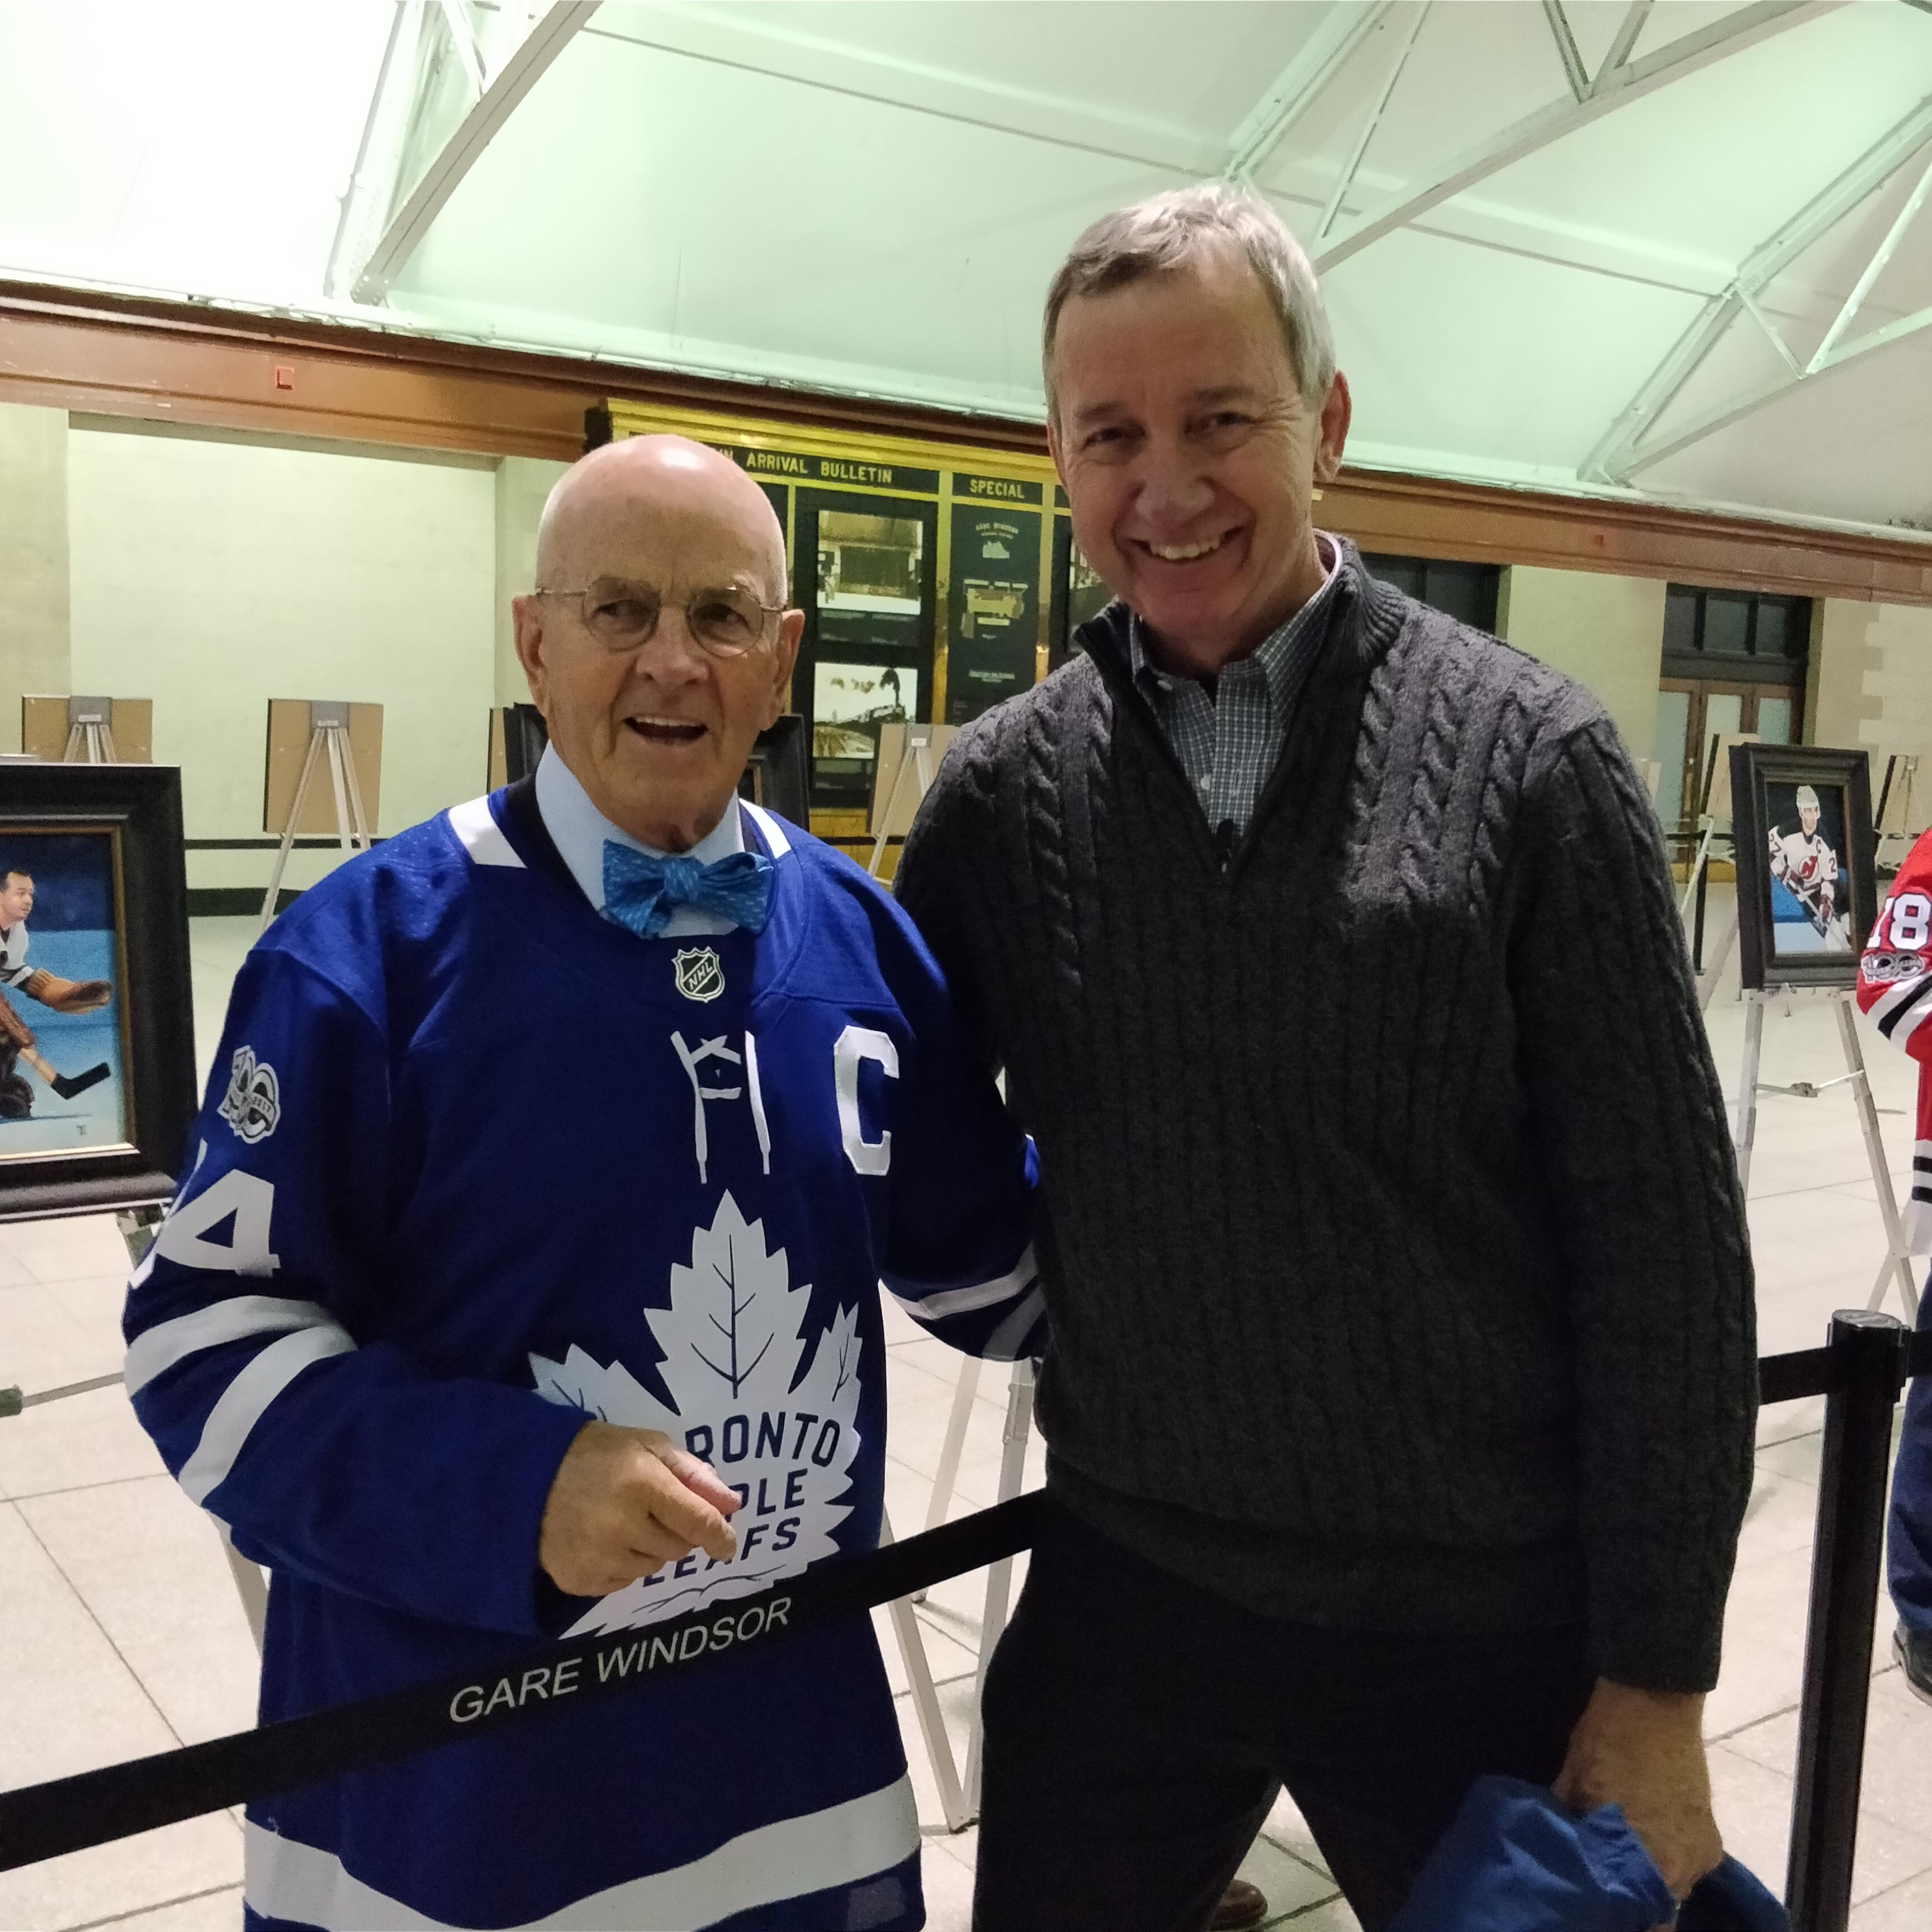 Montreal vs Leafs Nov 18 2017 with Dave Keon